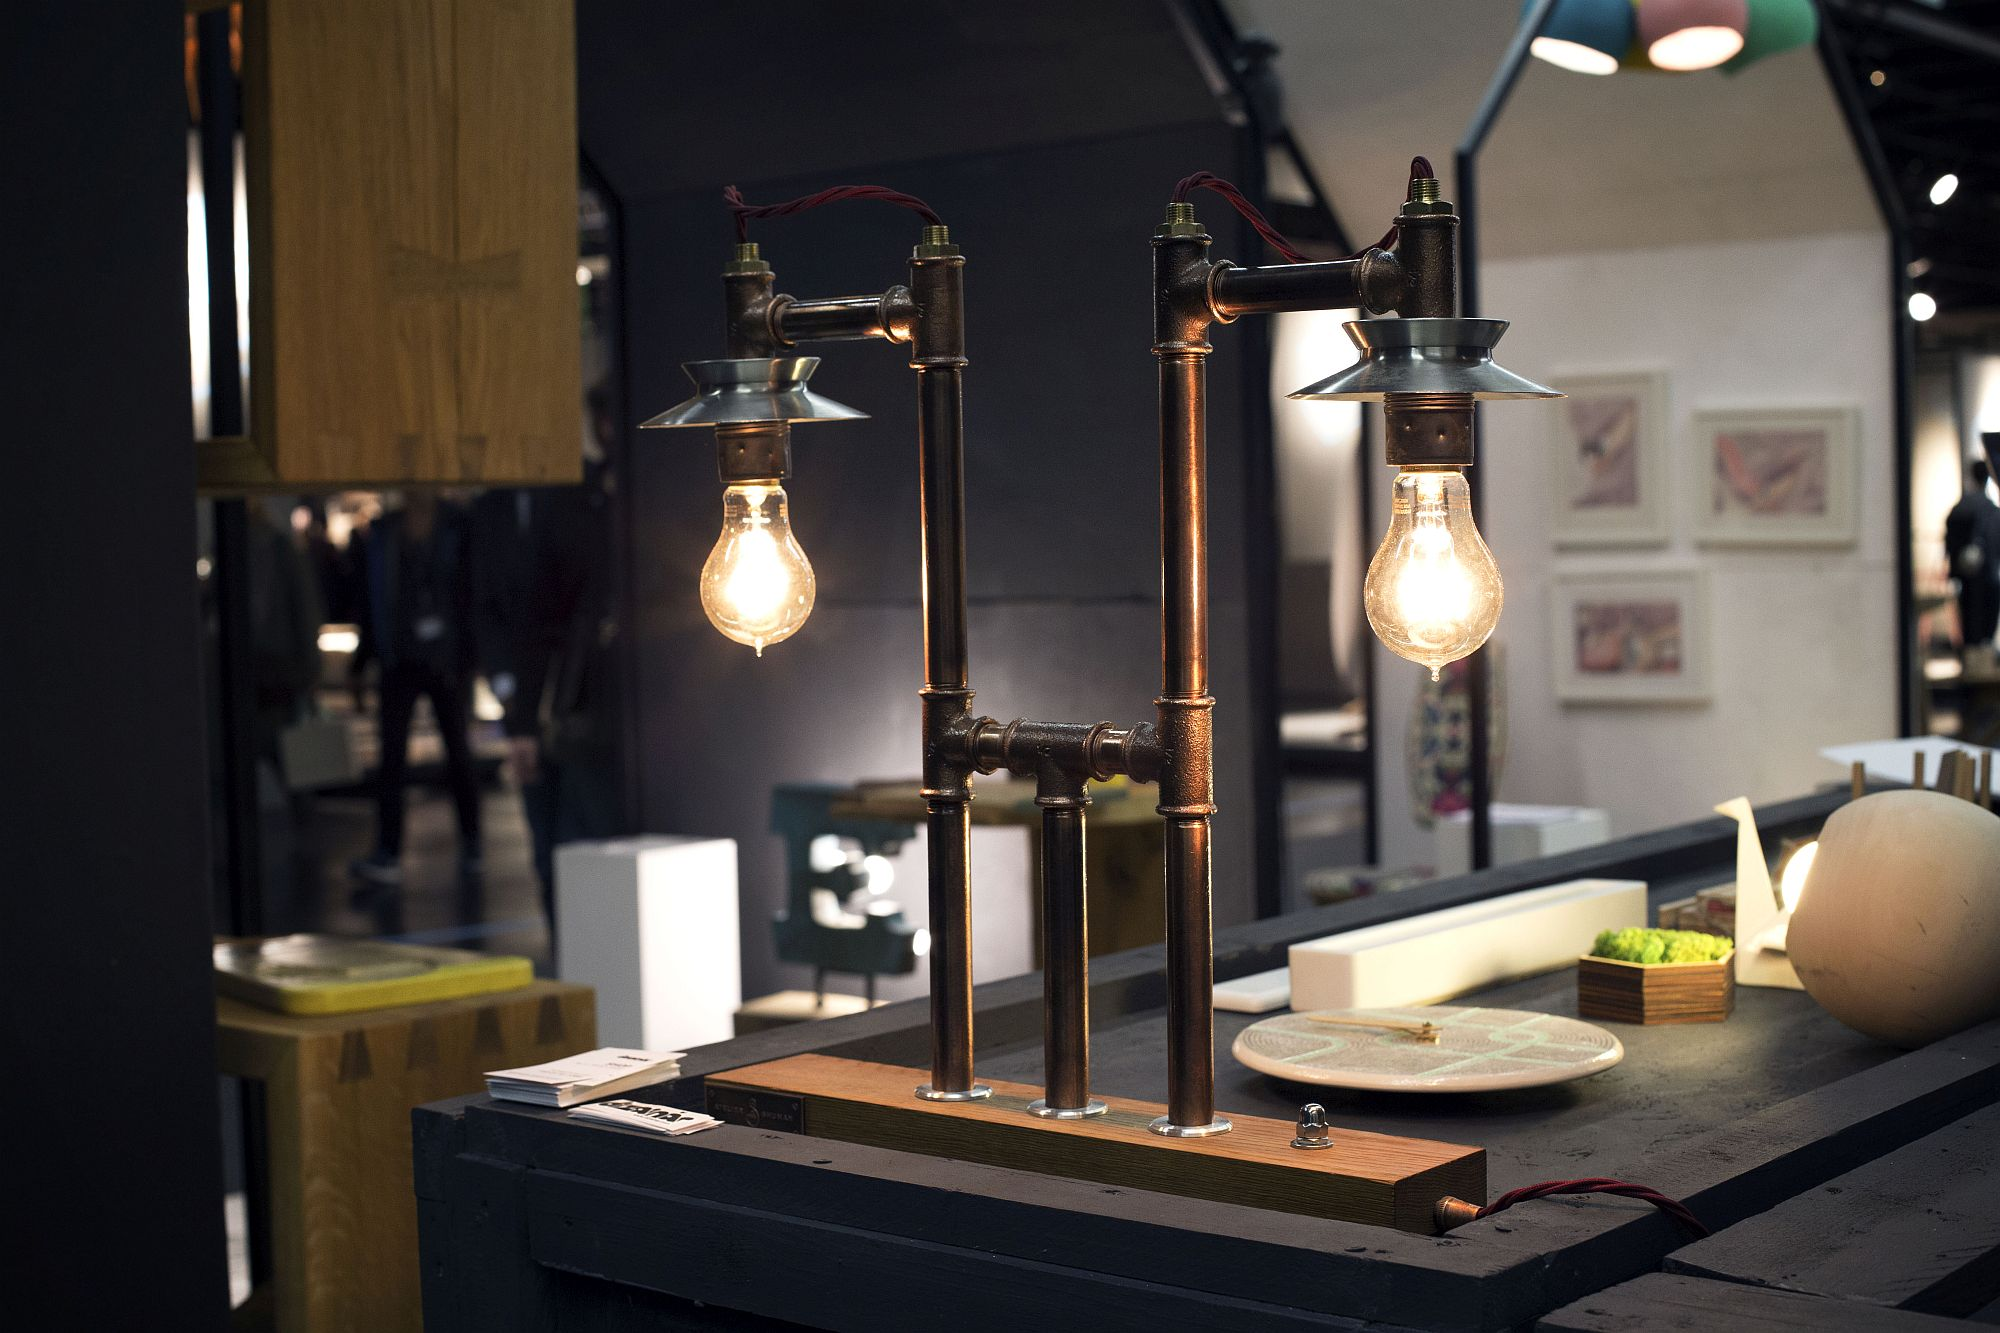 Gorgeous-lamps-from-Dizainar-at-IMM-Cologne-2017